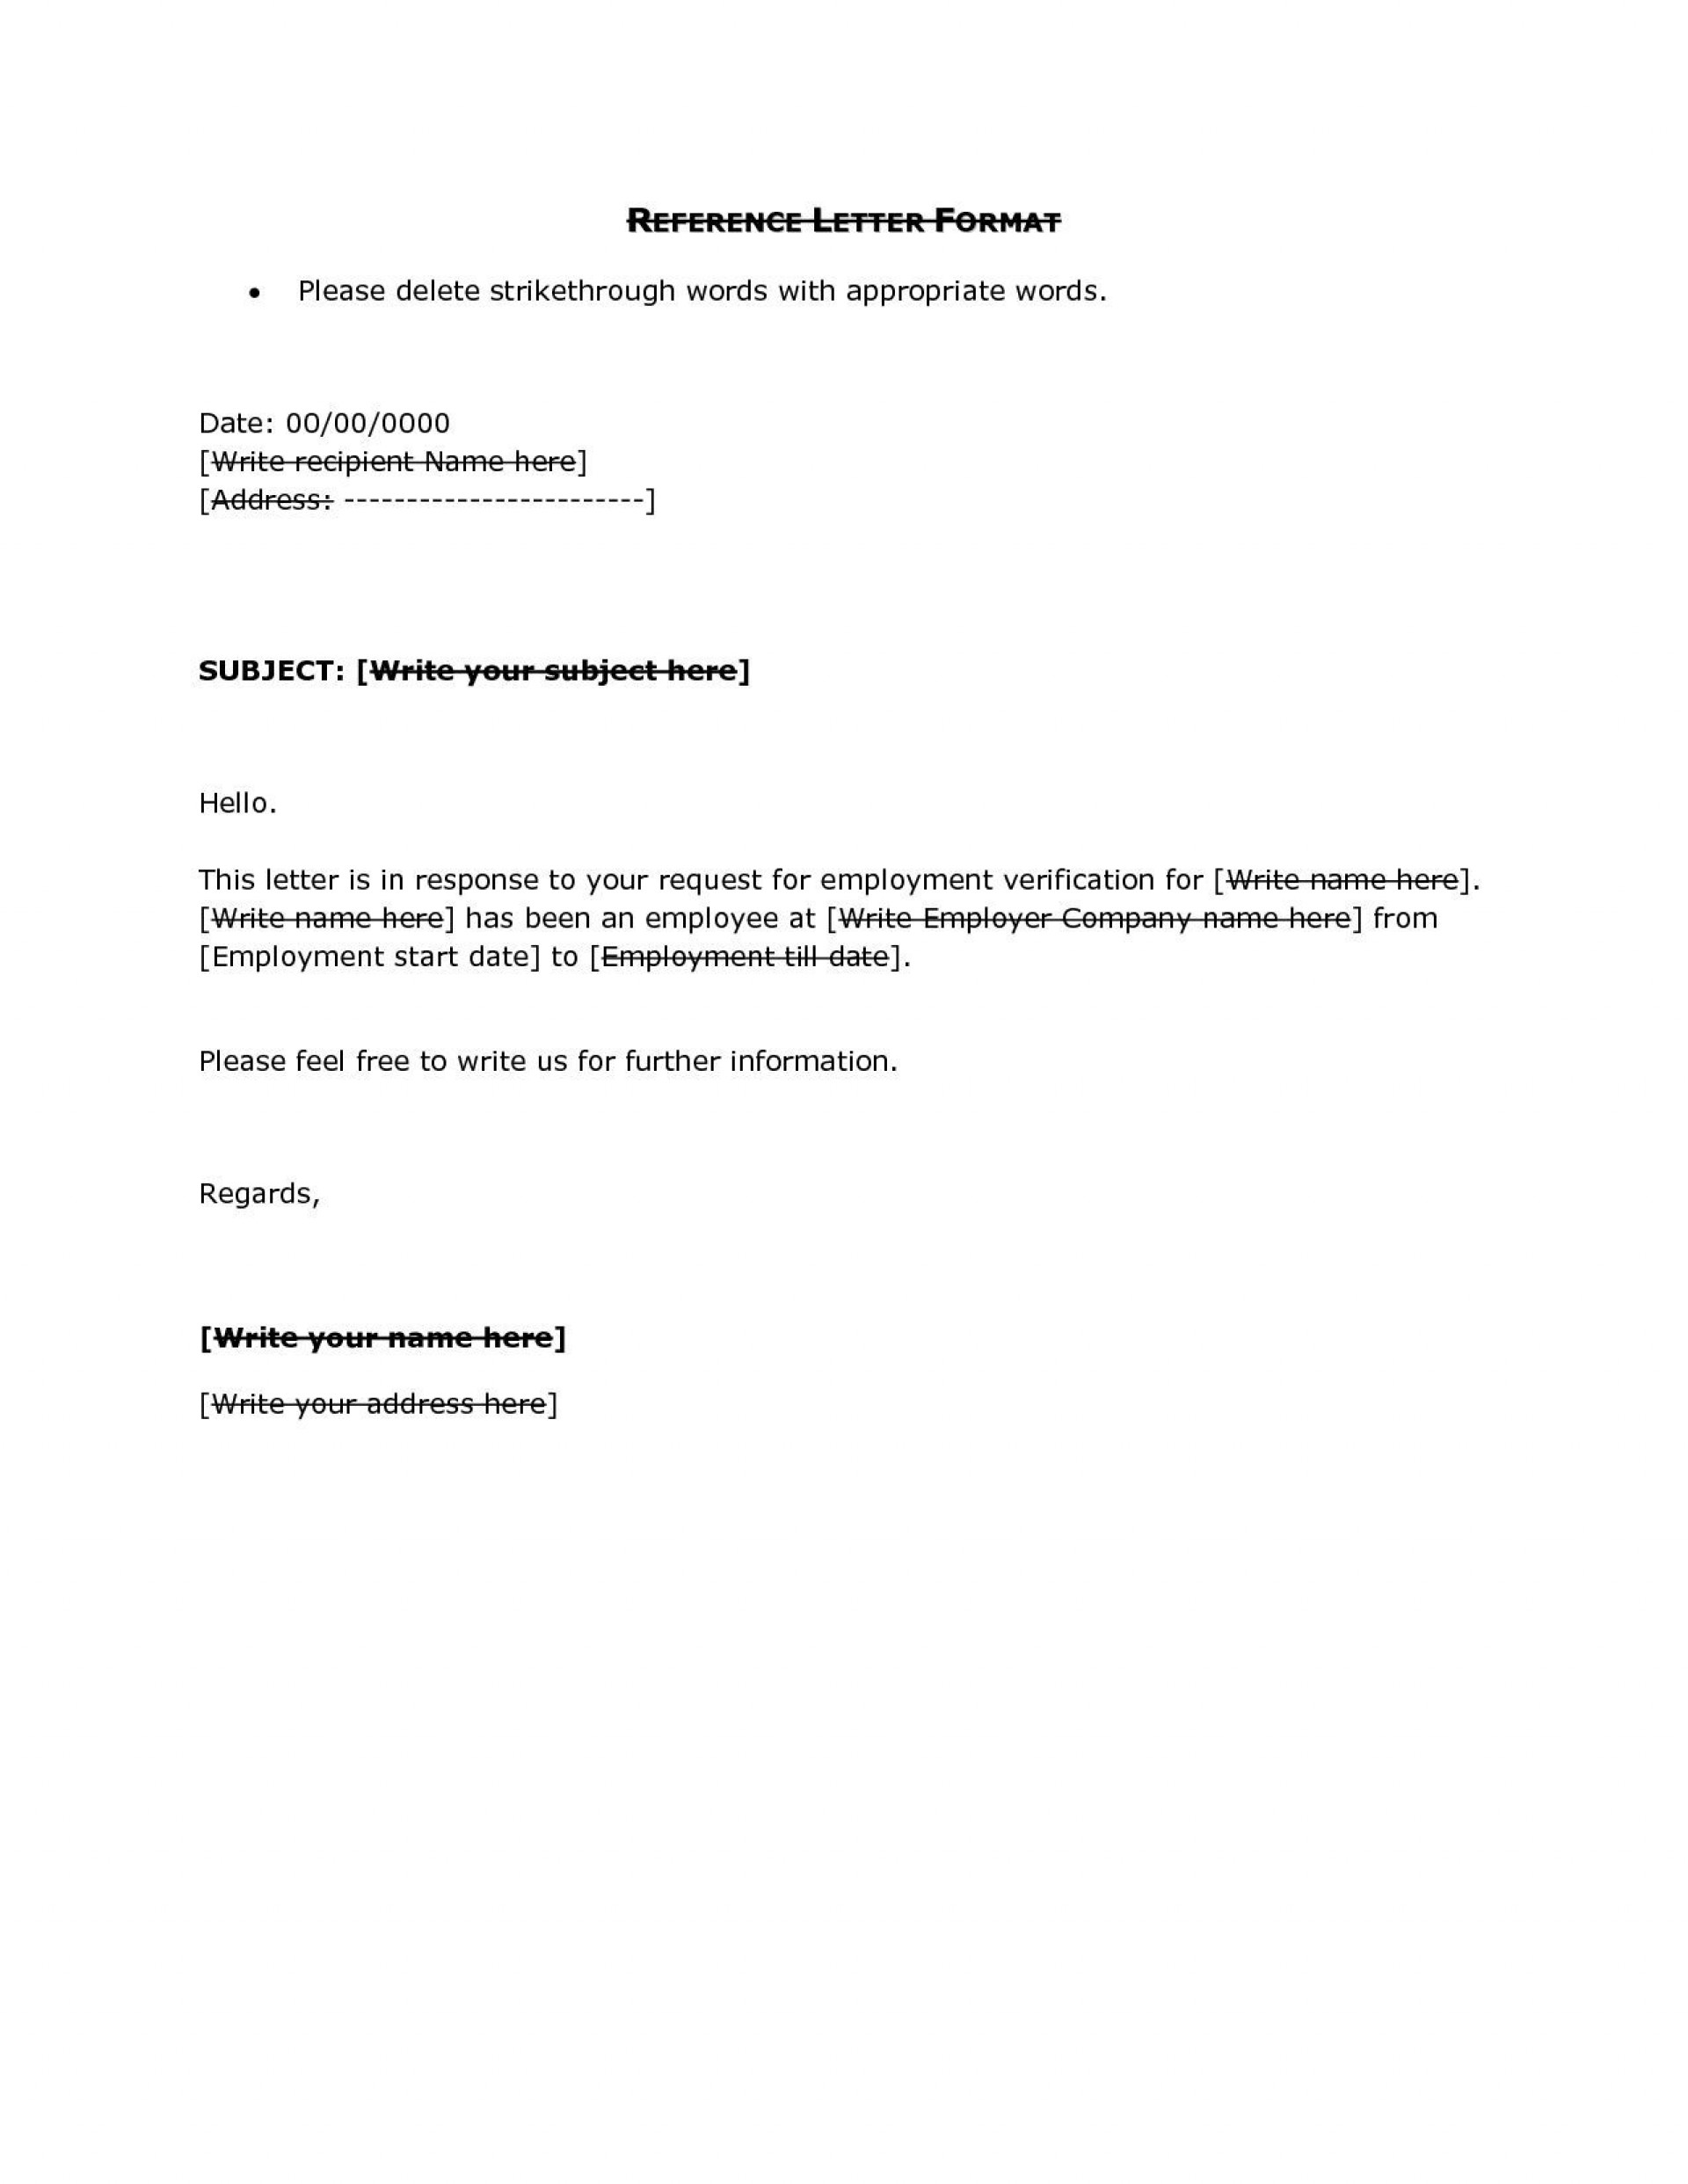 Employee Reference Letter Templates from www.addictionary.org